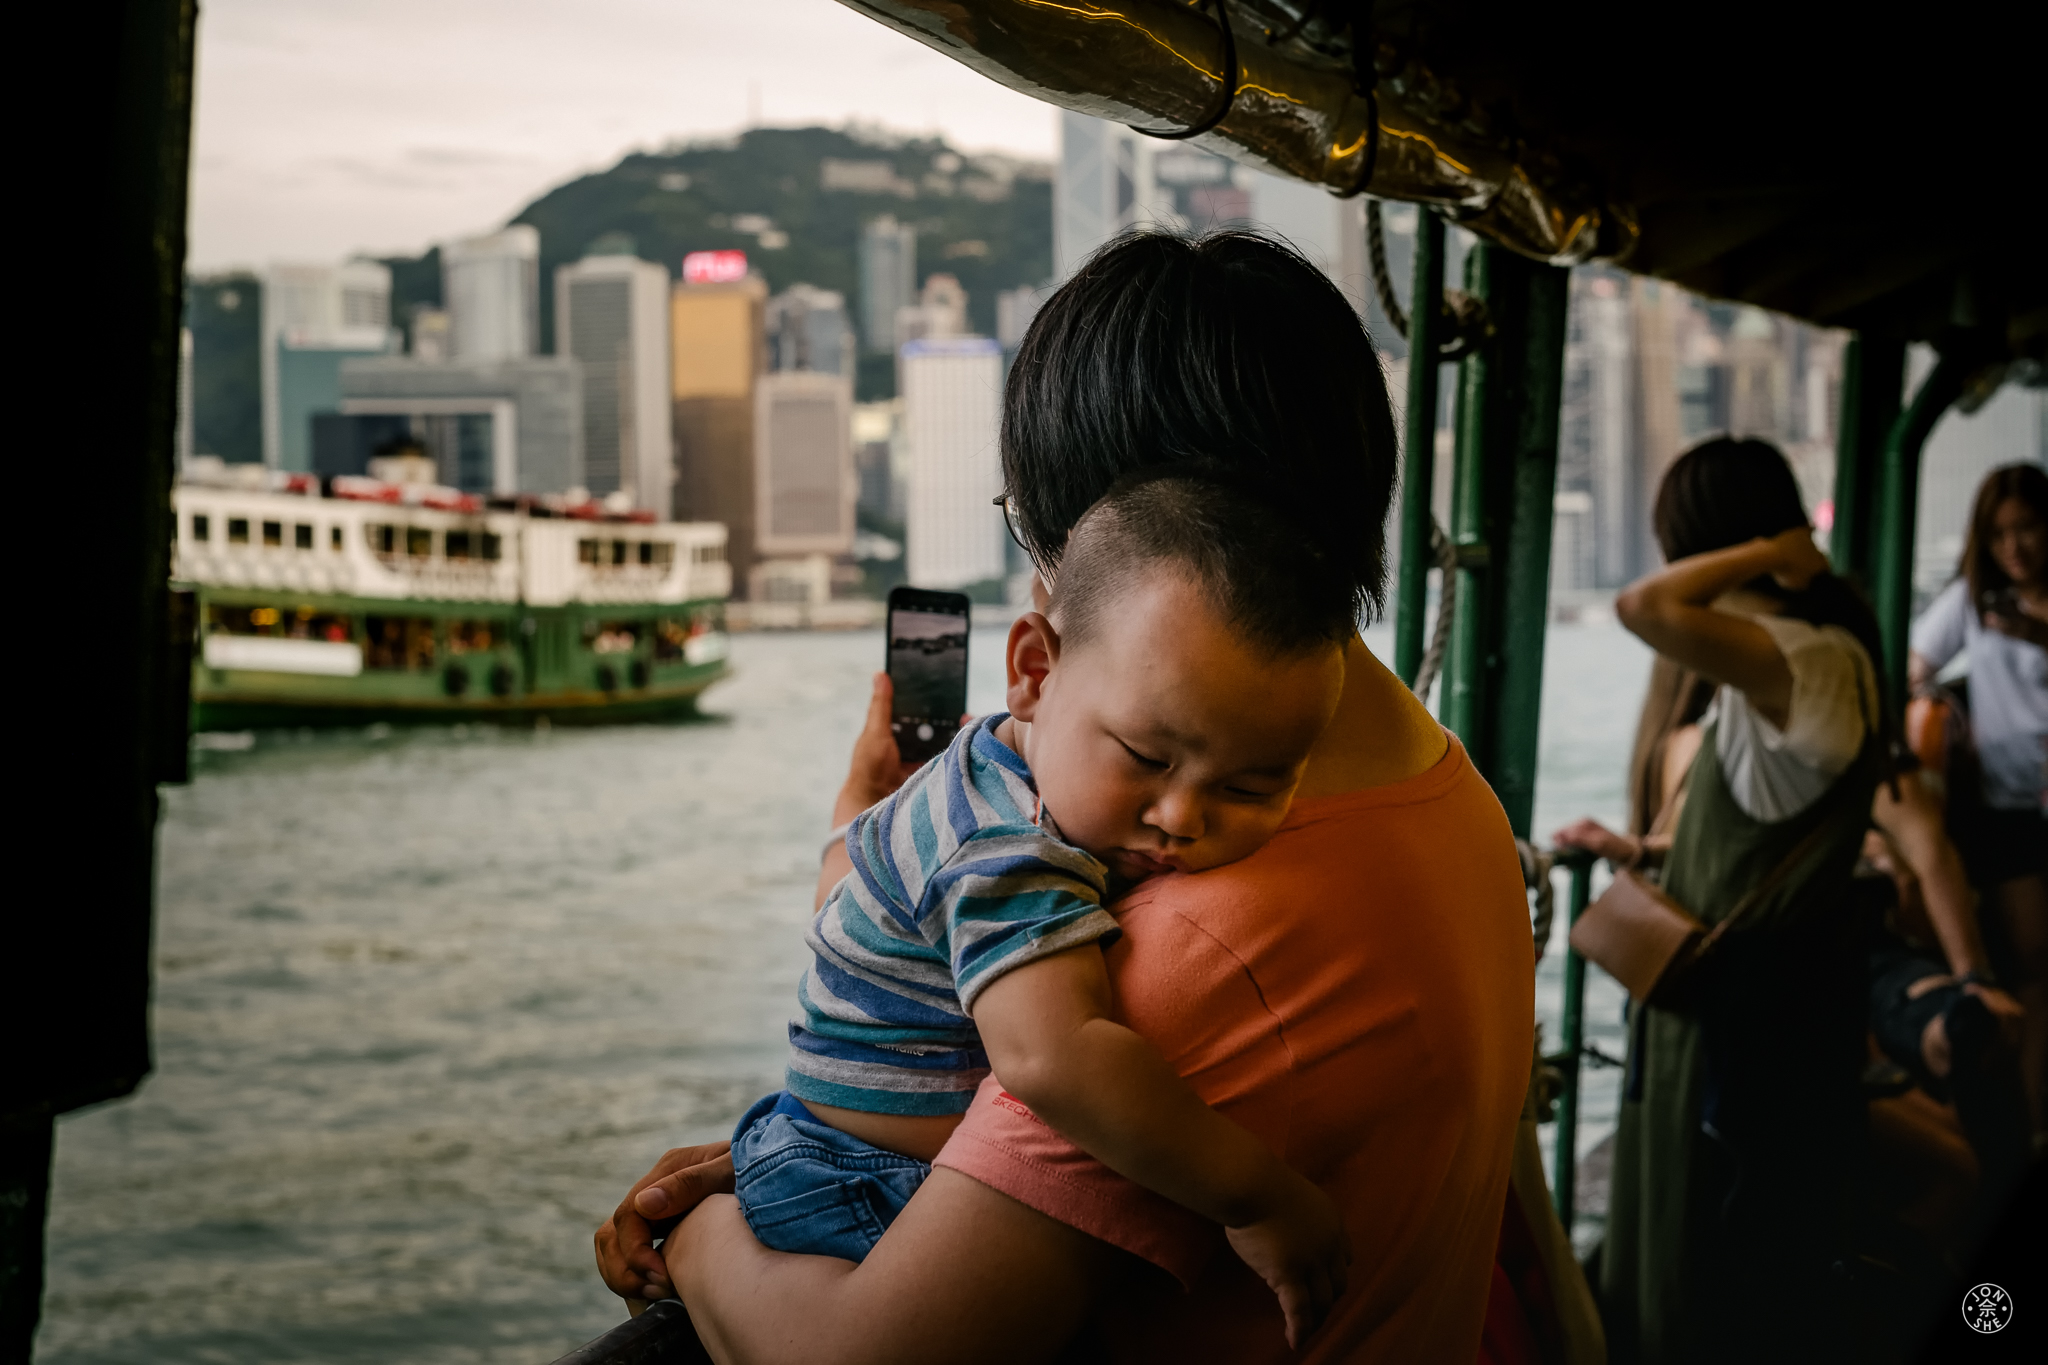 A Dream of Ferries and WeChat